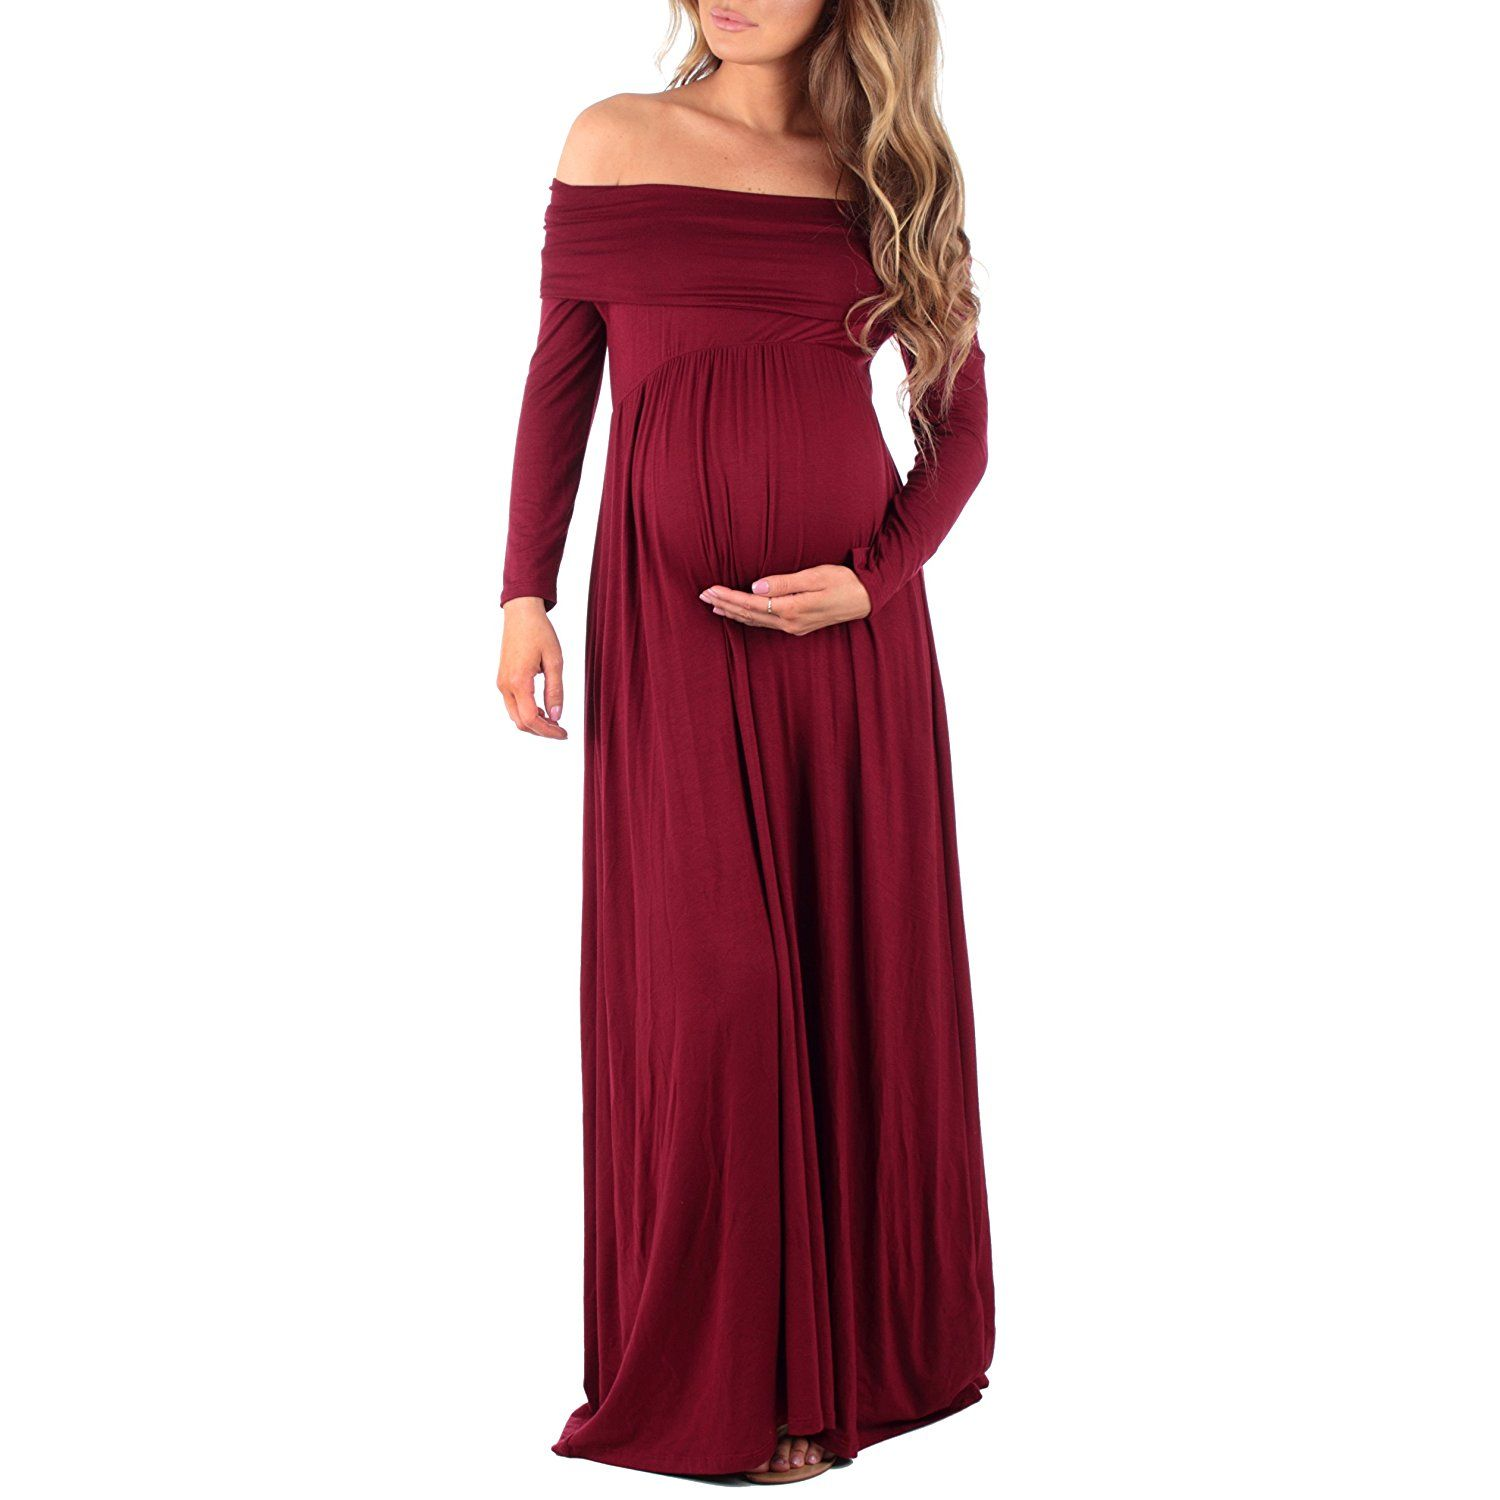 IWEMEK Womens Off Shoulder Maternity Dress Long Sleeve Pregnant Photo Shoot Maxi Gown